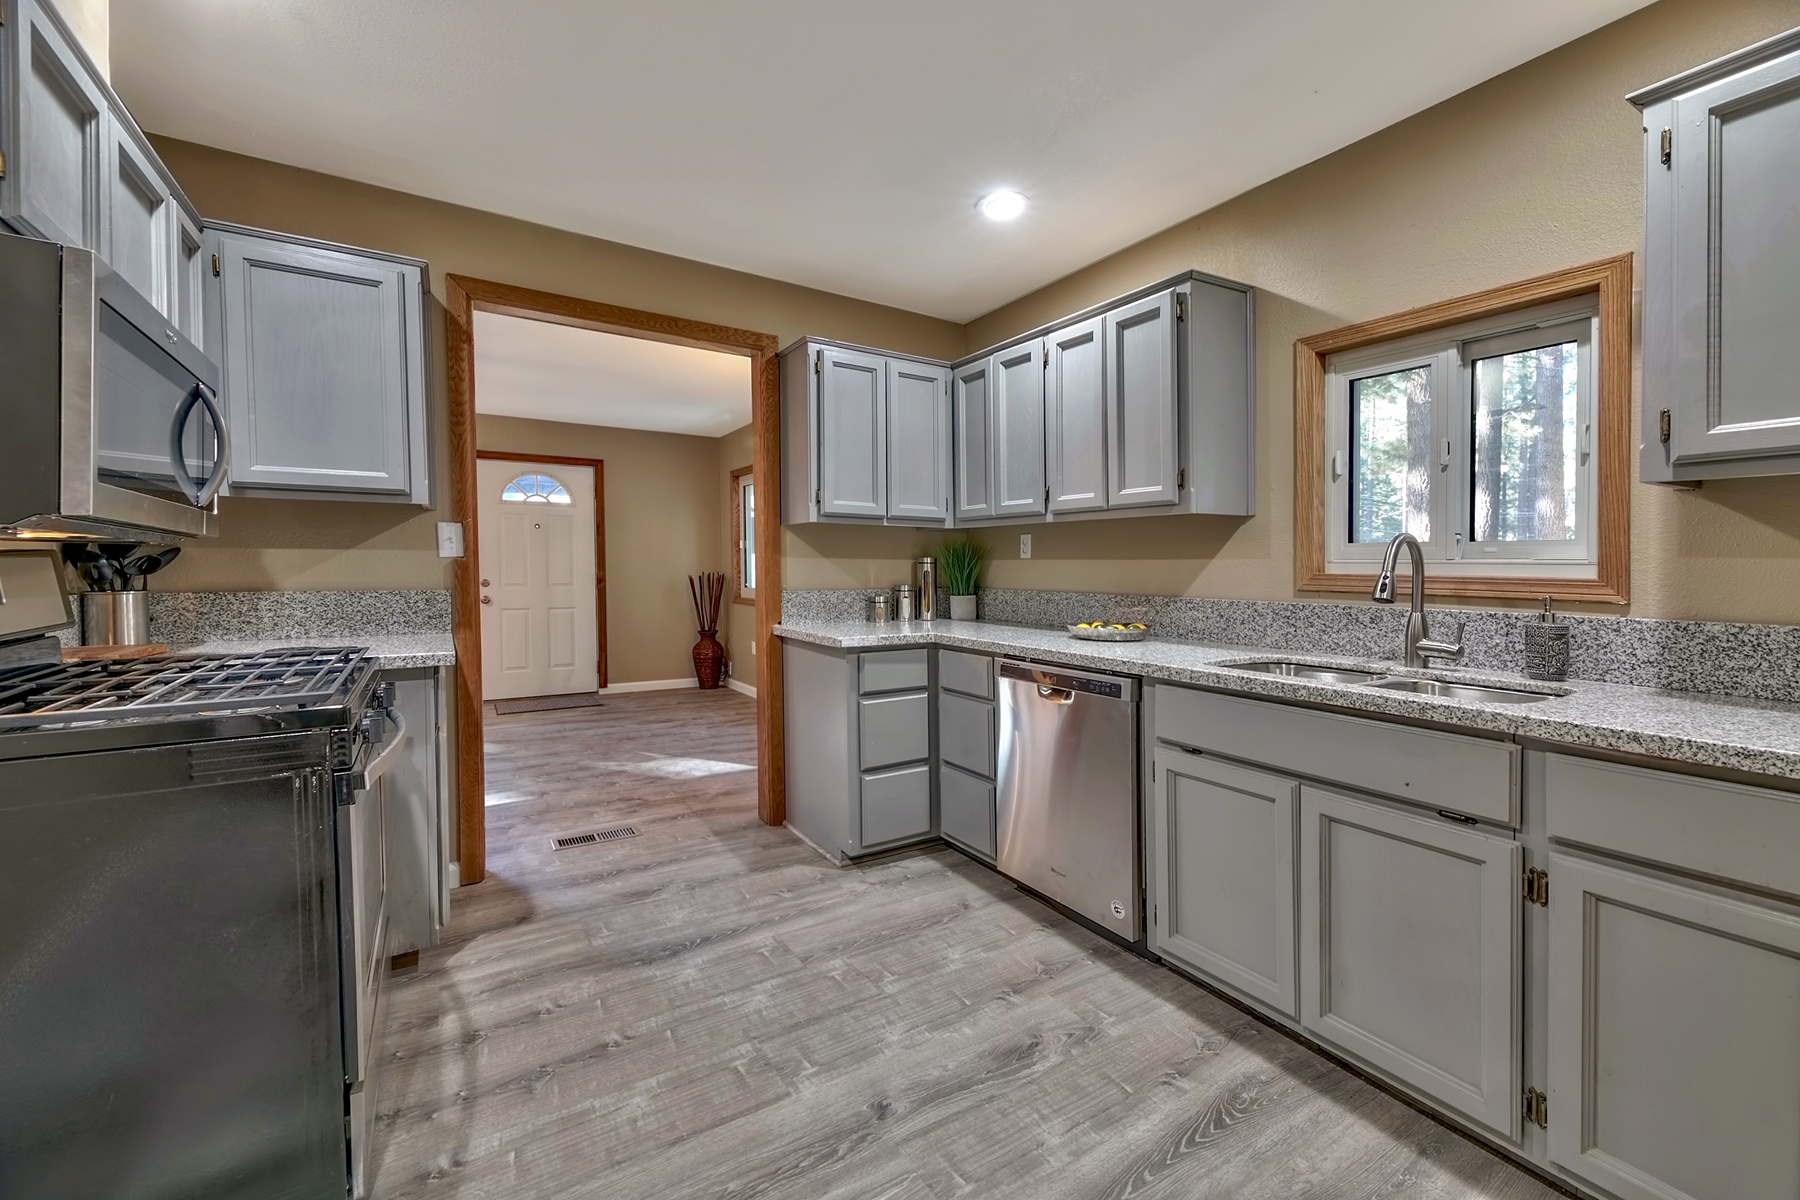 Additional photo for property listing at 1285 Margaret Ave, South Lake Tahoe, Ca 96150 1285 Margaret Avenue South Lake Tahoe, California 96150 United States